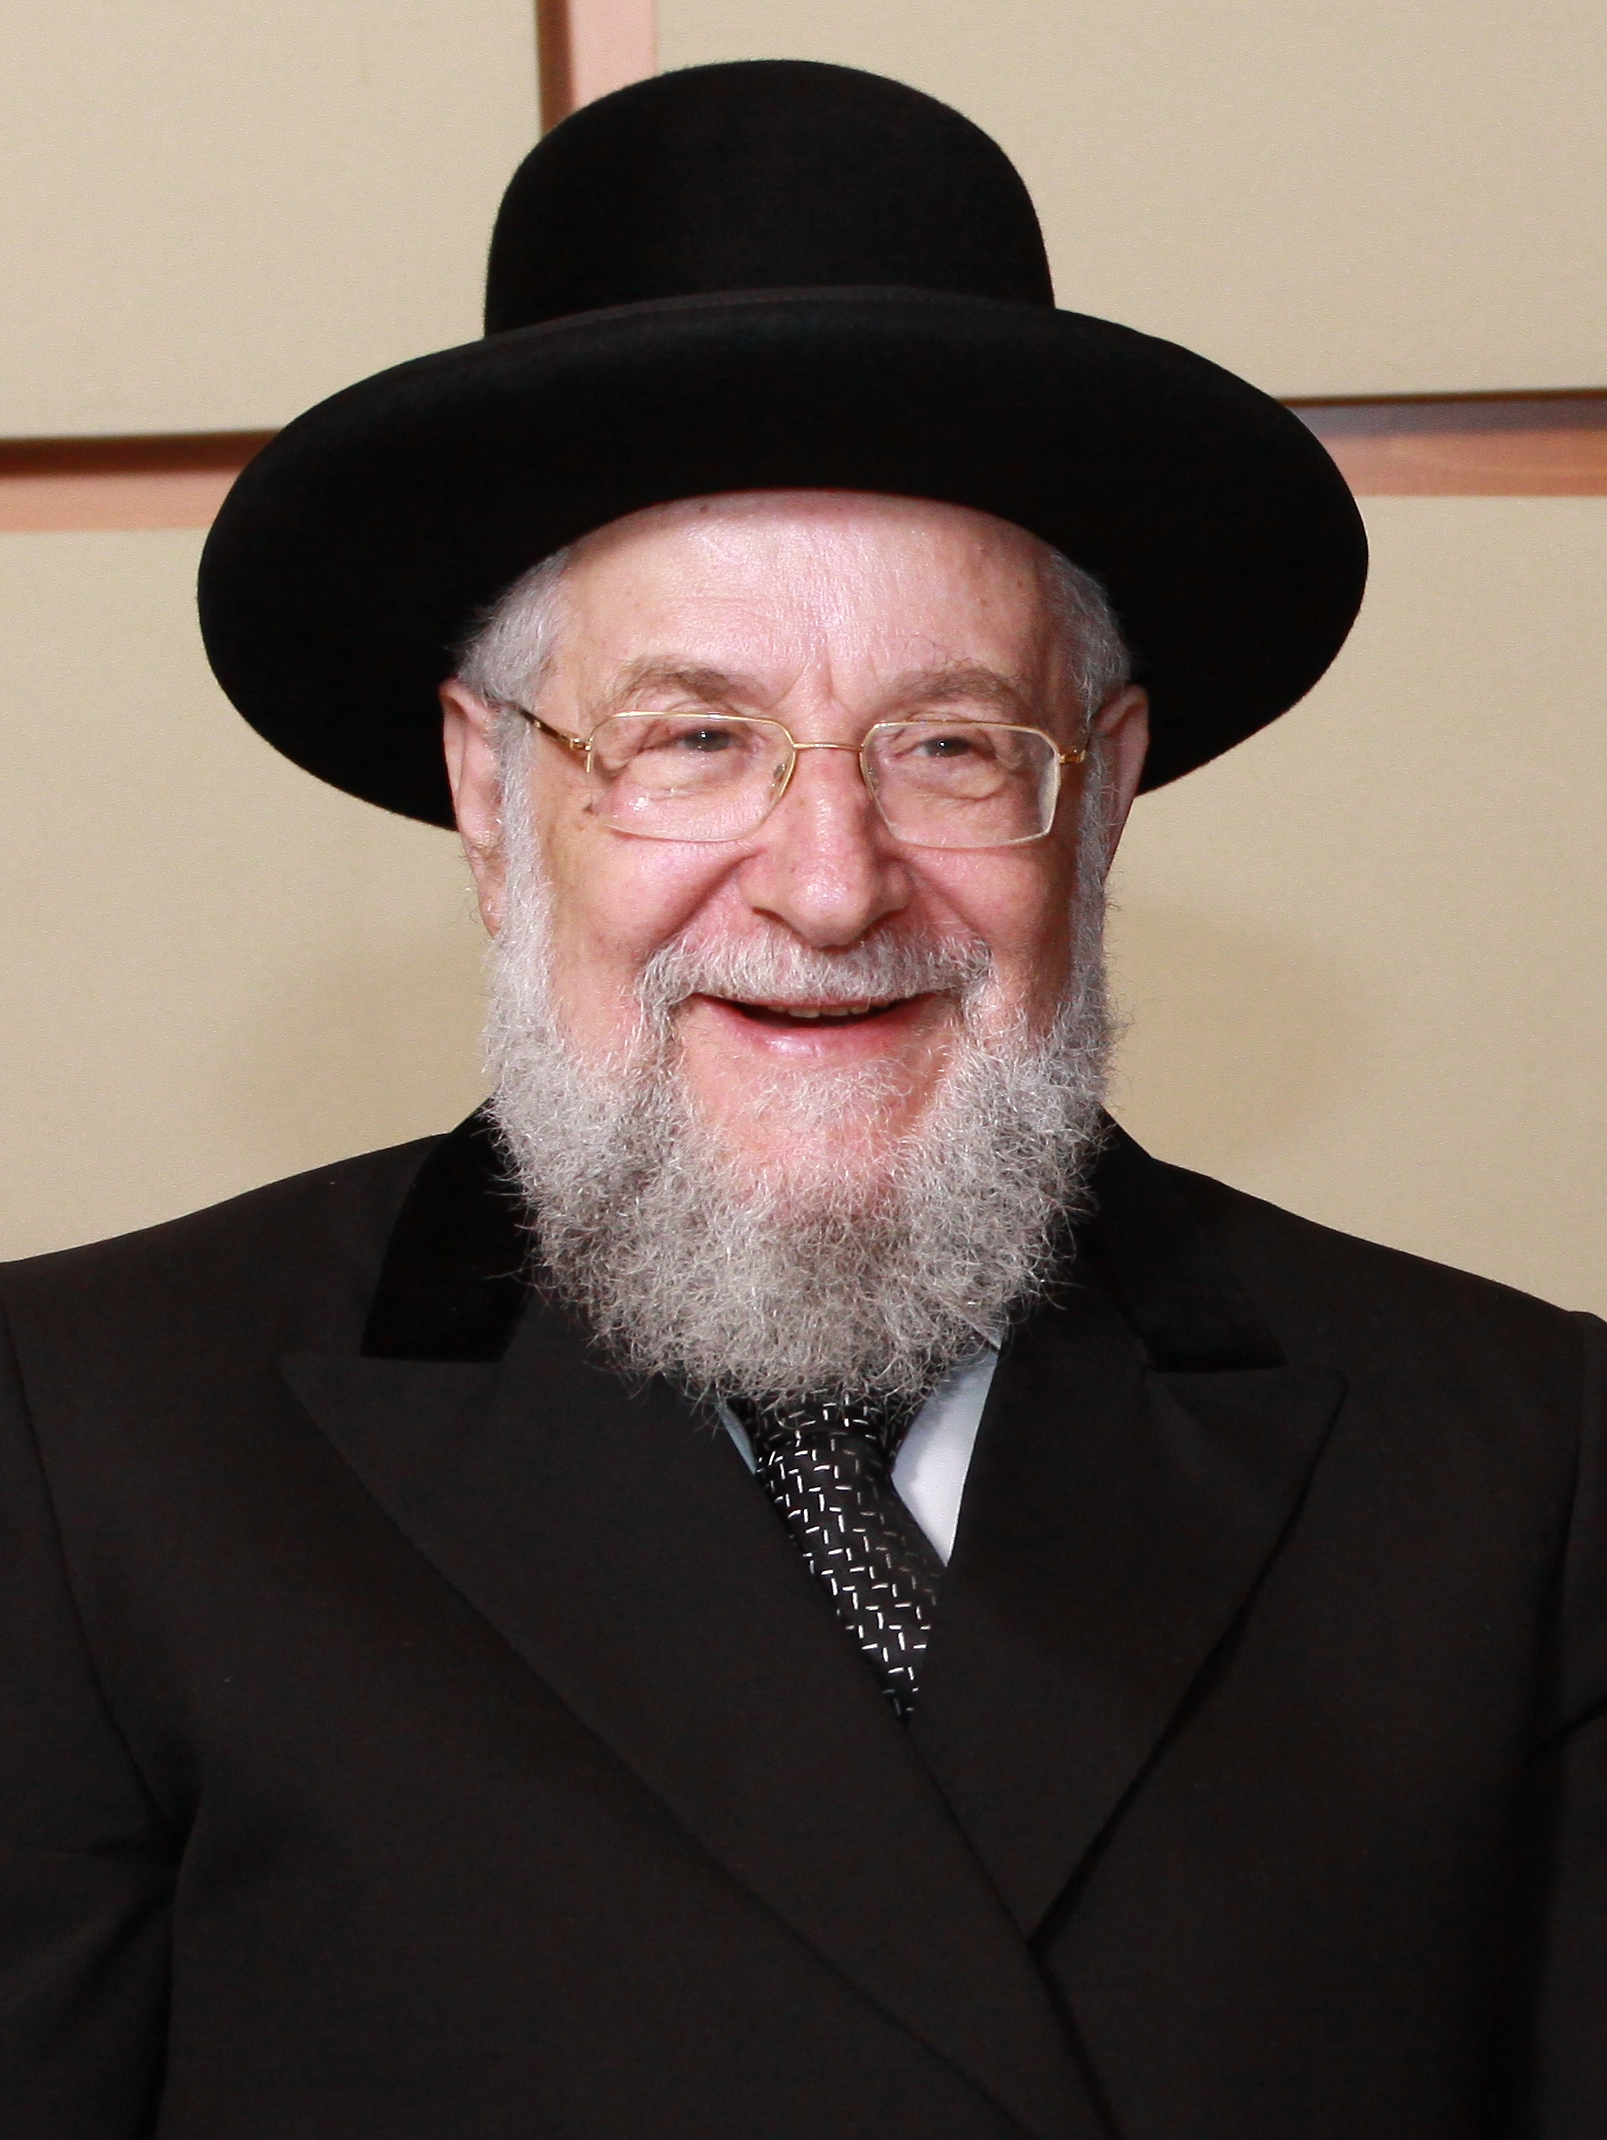 http://www.70for70.com/wp-content/uploads/2015/03/chief-rabbi-lau.jpg